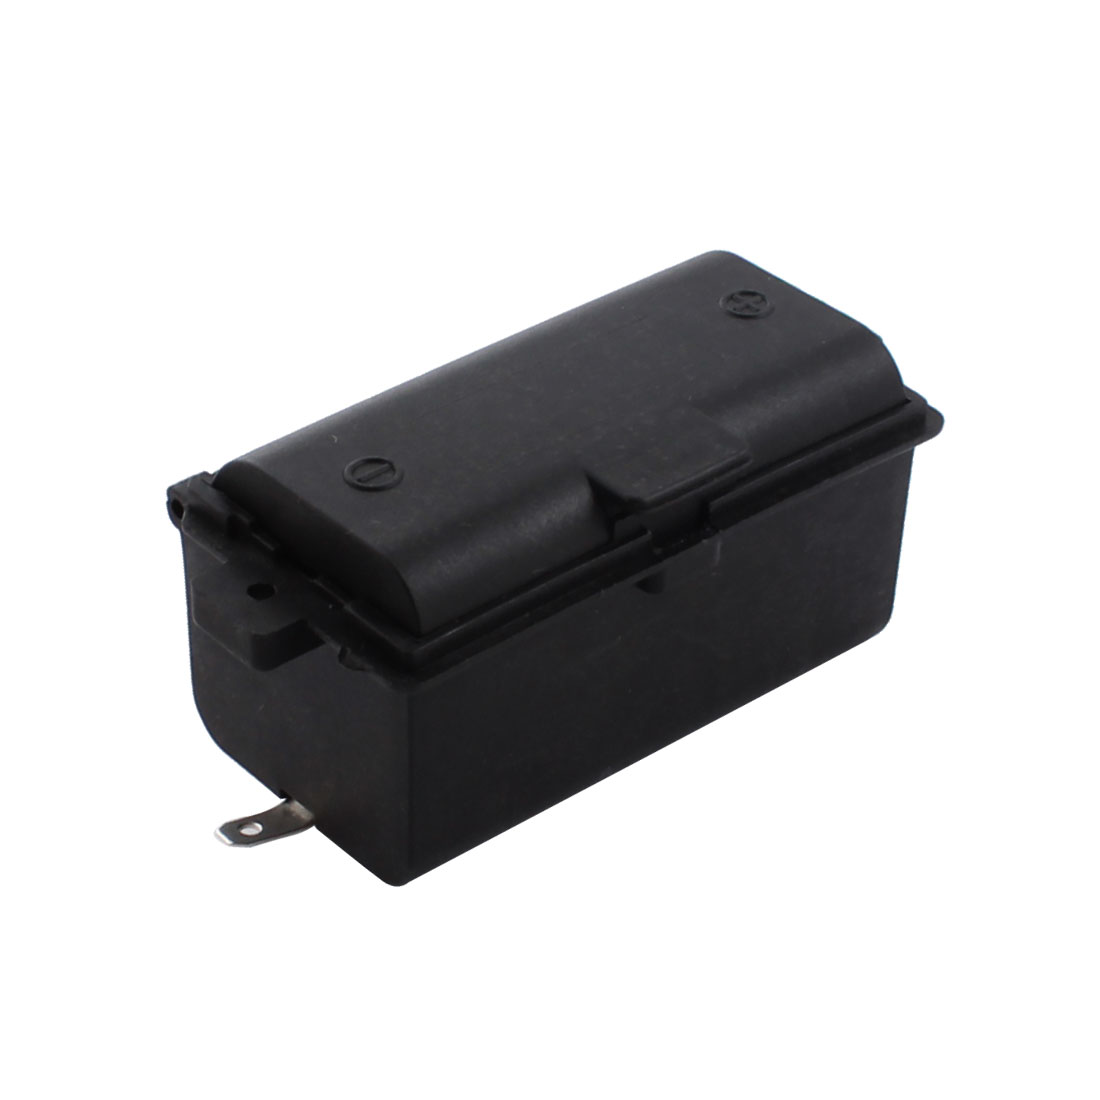 Spring Load Rectangle Black Plastic 1 x 1.5V D Size Battery Holder Storage Case Box for Cooker Stove